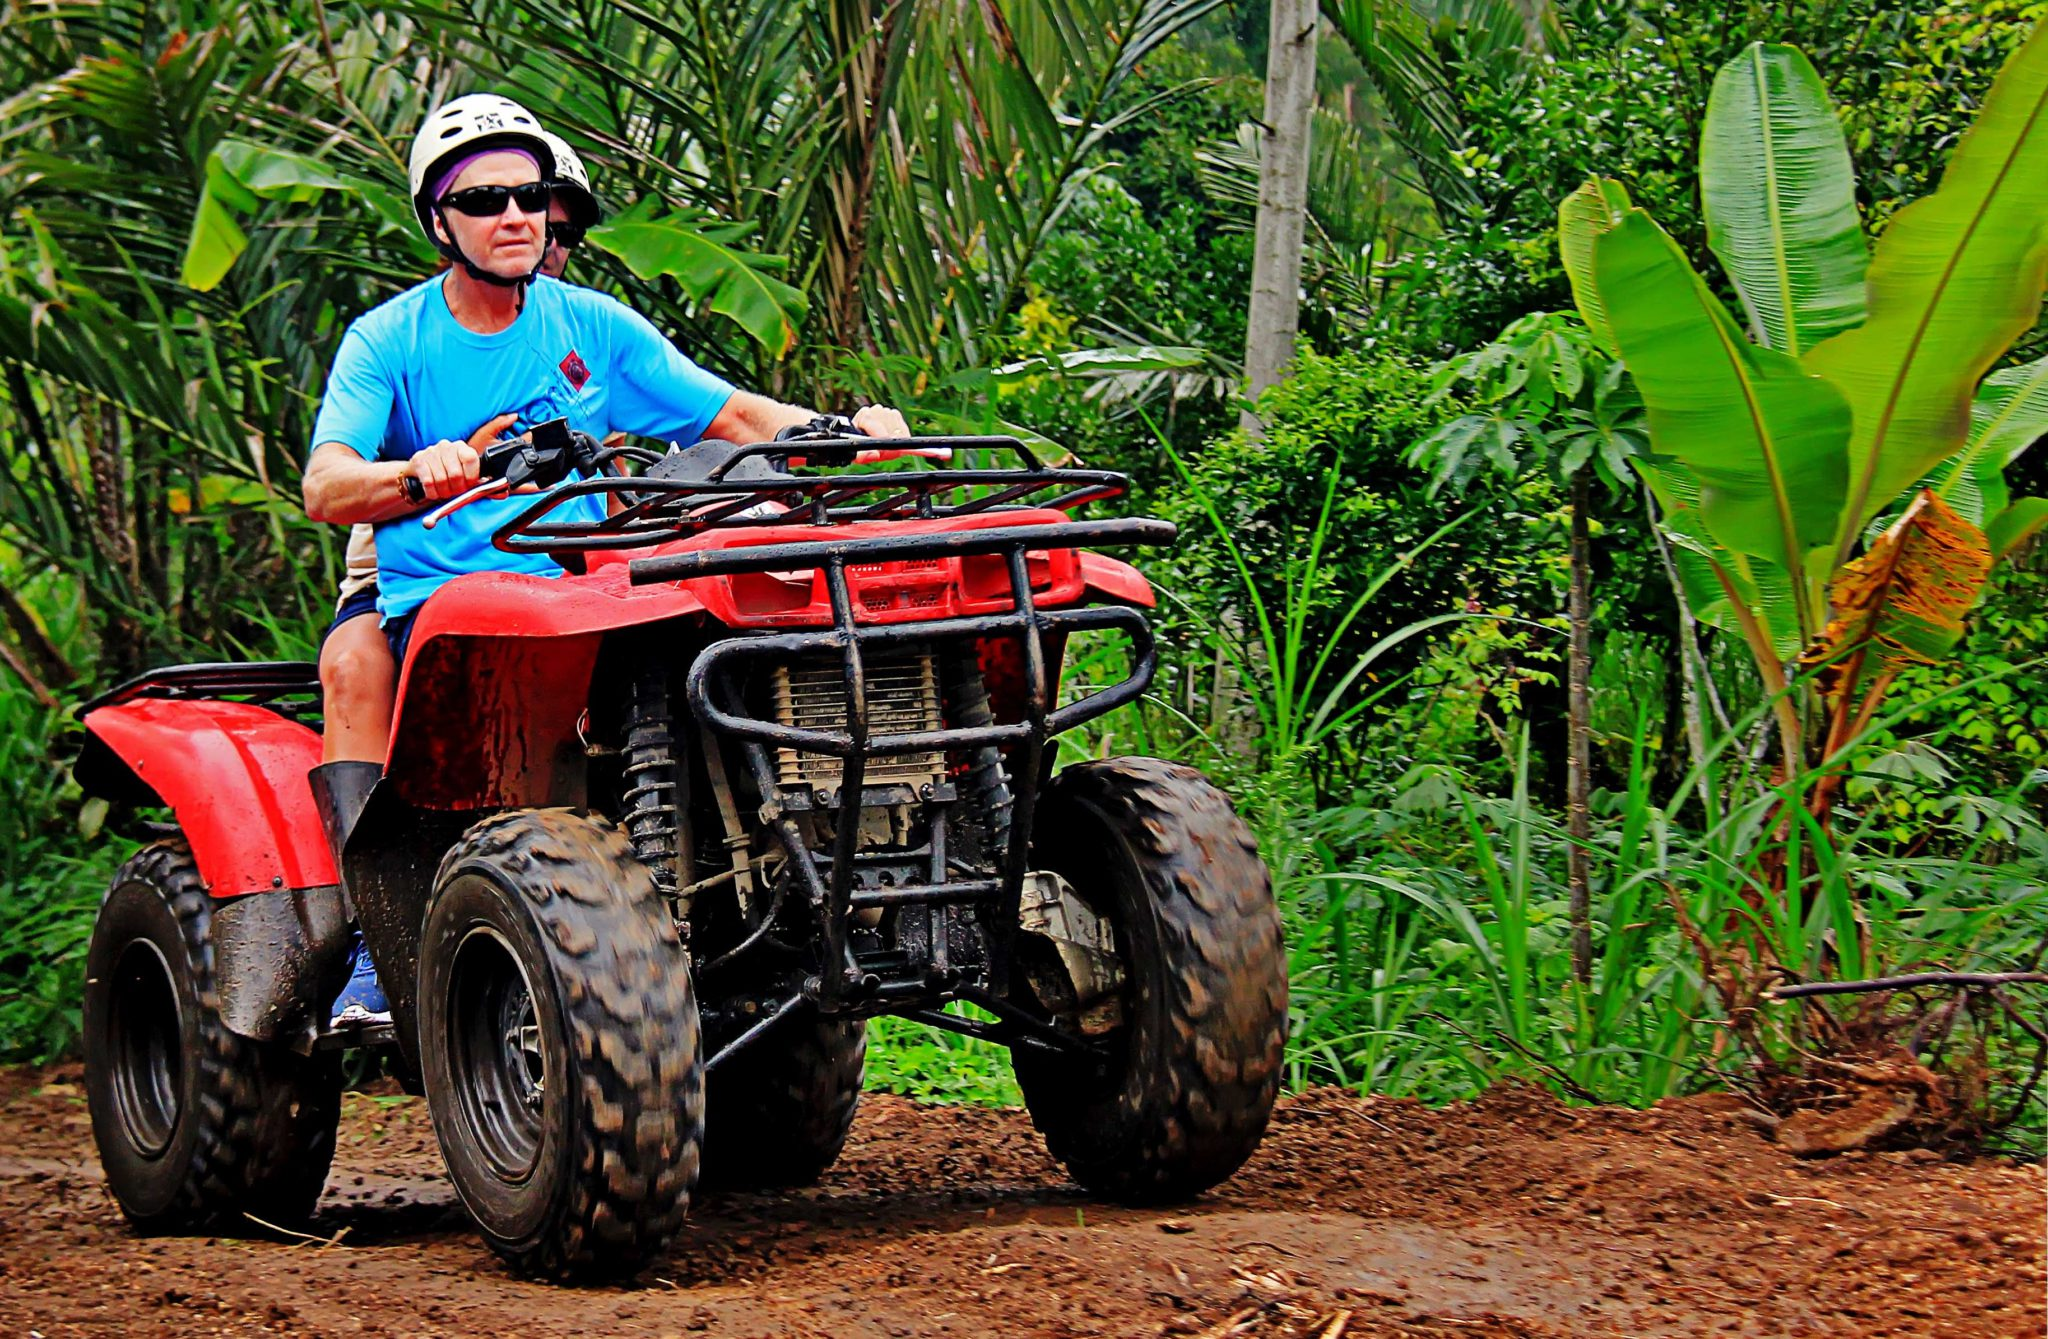 Multi Action Sports in Bali: Indonesian Activity Combinations